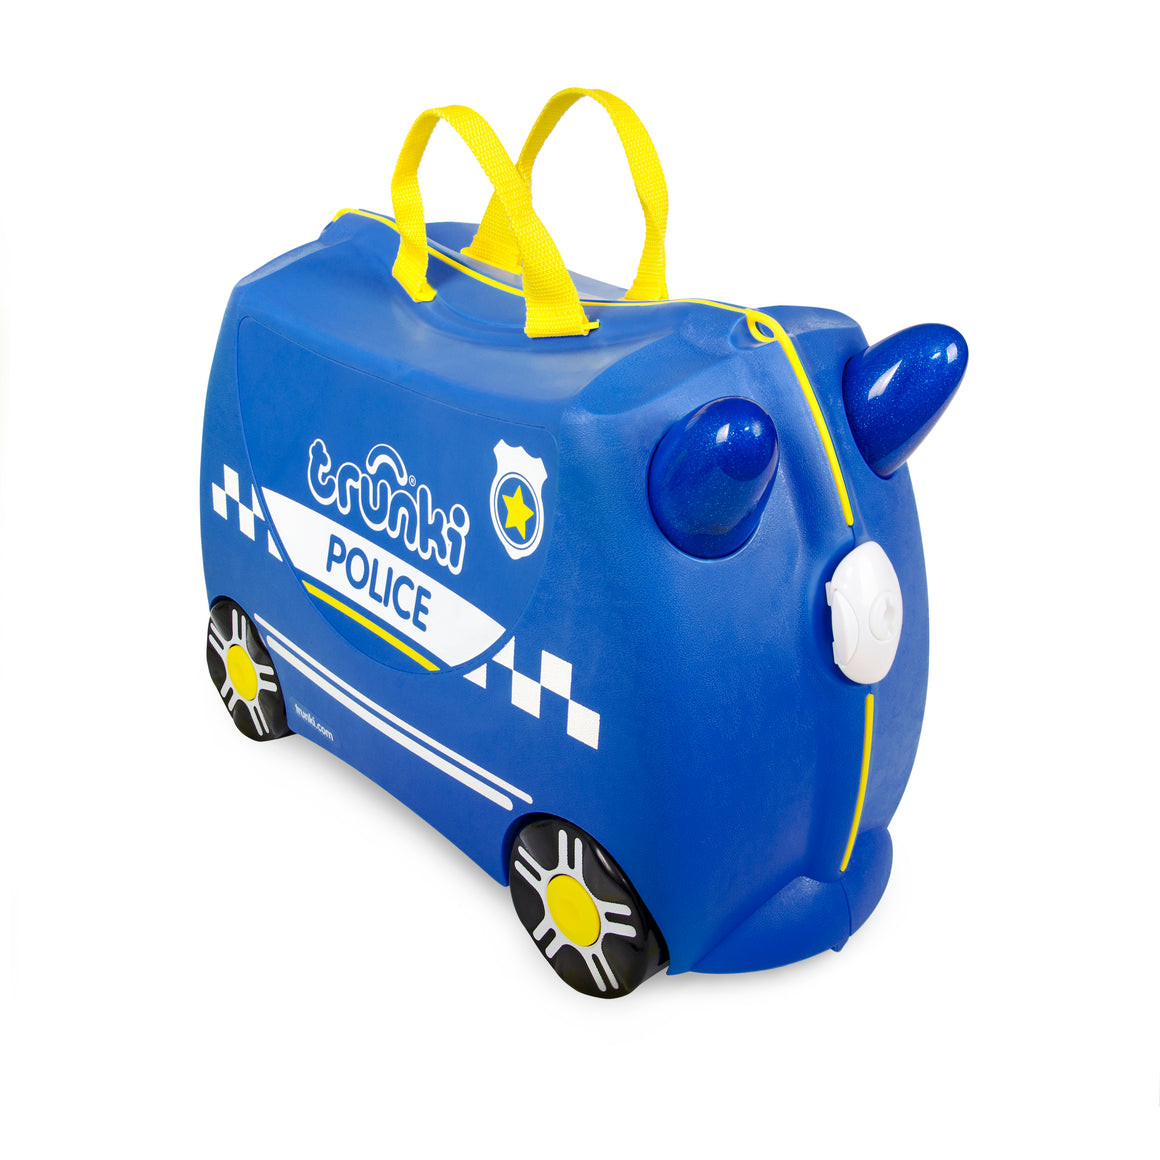 Trunki - Police Car Percy